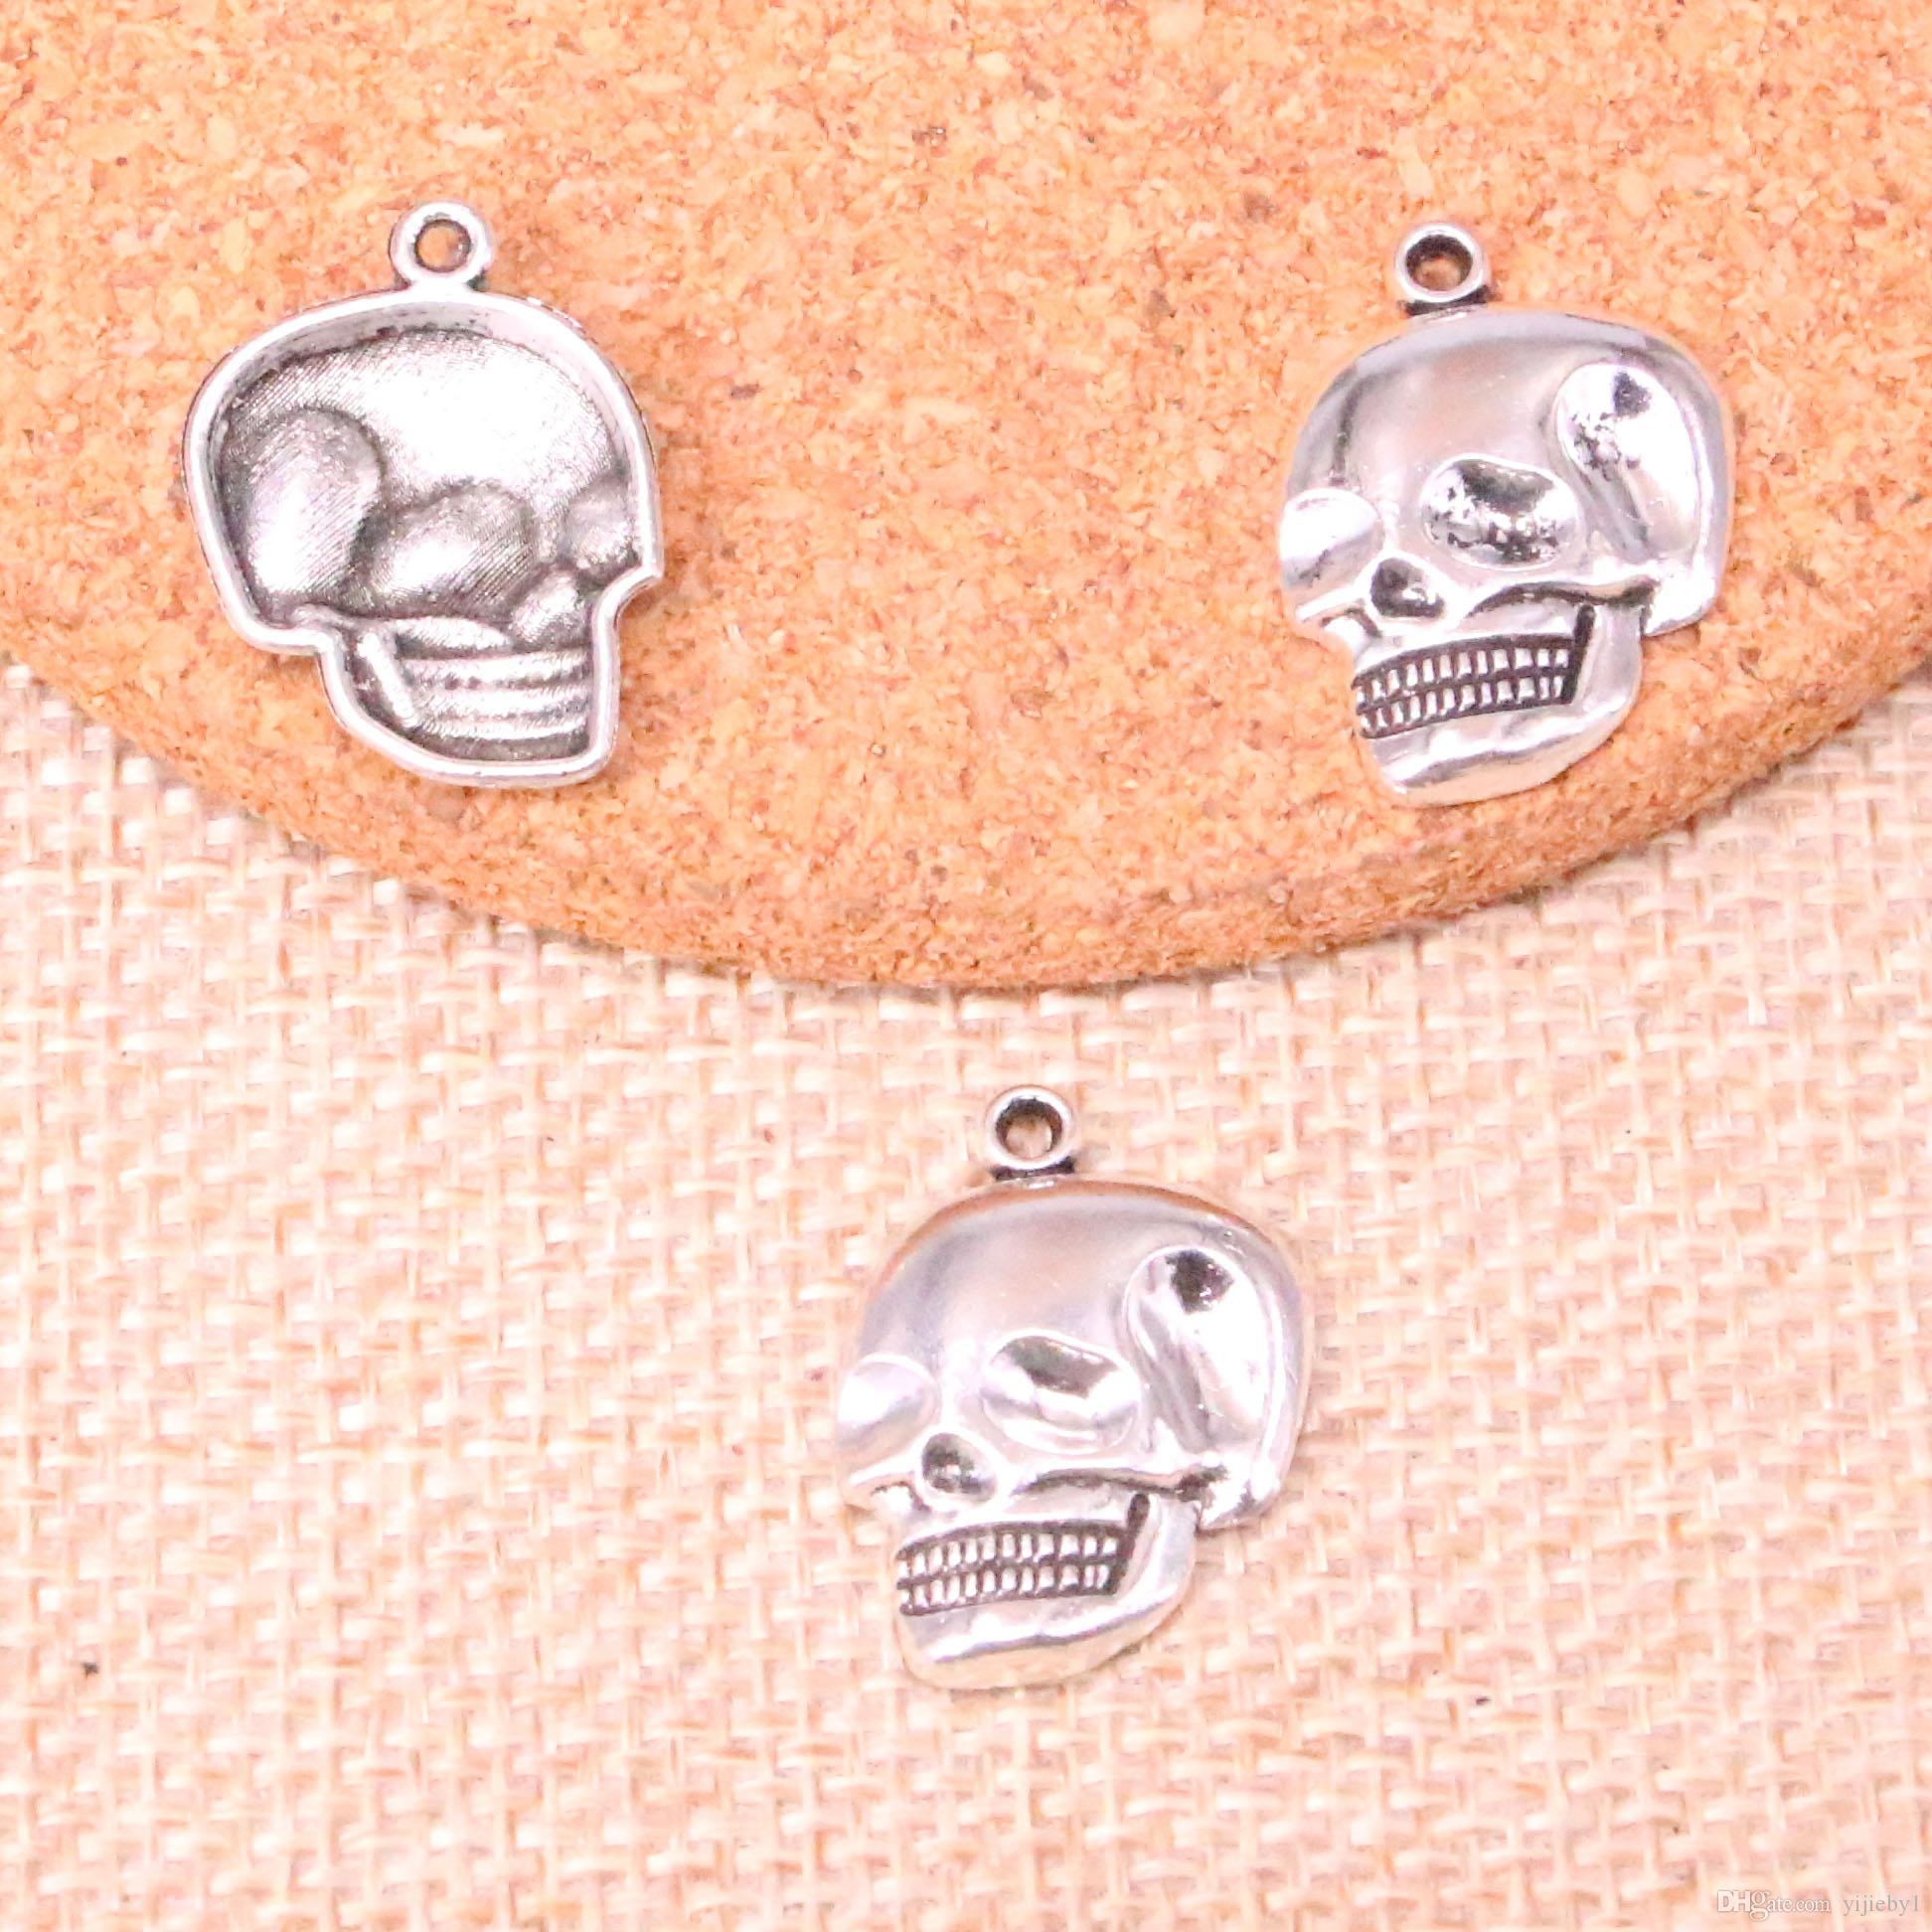 123pcs Charms skeleton head skull Antique Silver Plated Pendants Fit Jewelry Making Findings Accessories 21*16mm